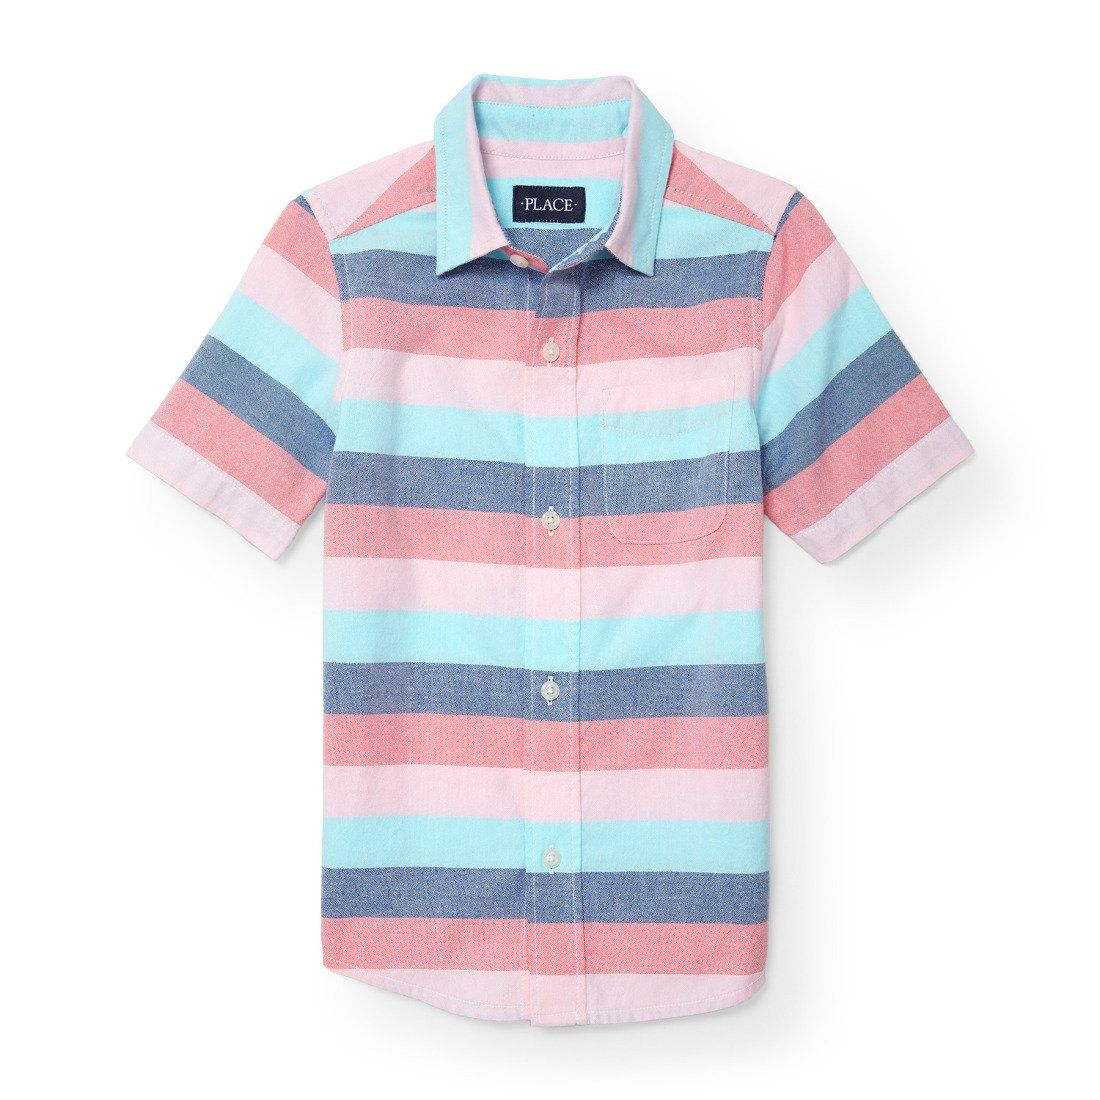 The Childrens Place Boys Short Sleeve Stripe Polos